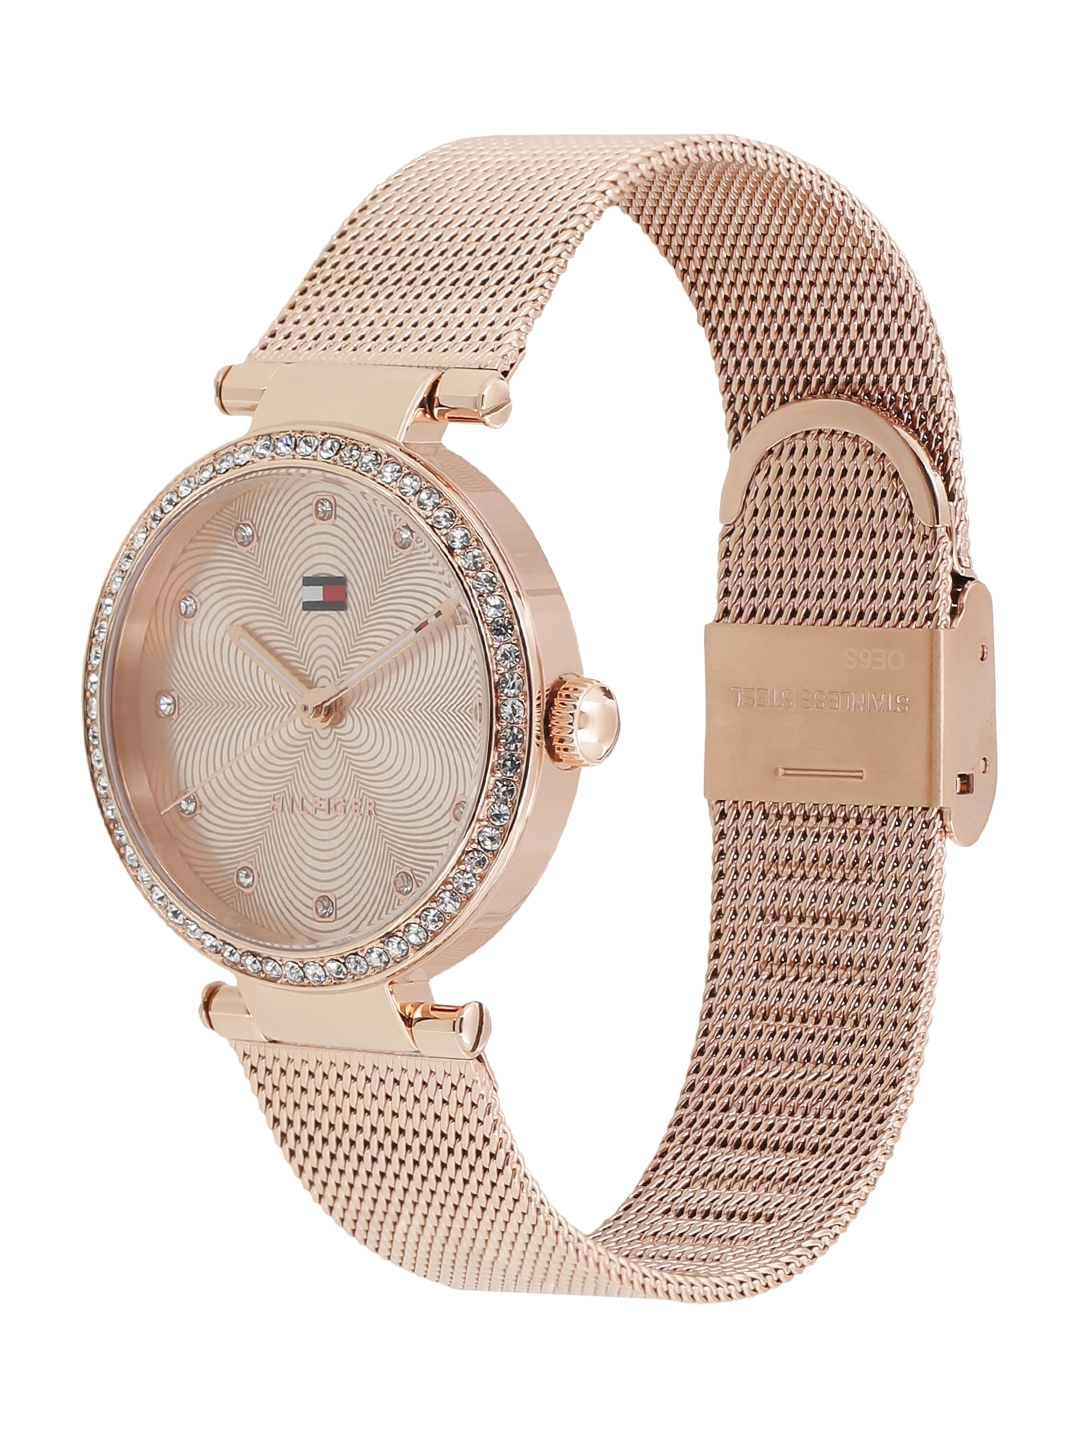 4376d02220 Buy Tommy Hilfiger Women Rose Gold Analogue Watch TH1781865 ...